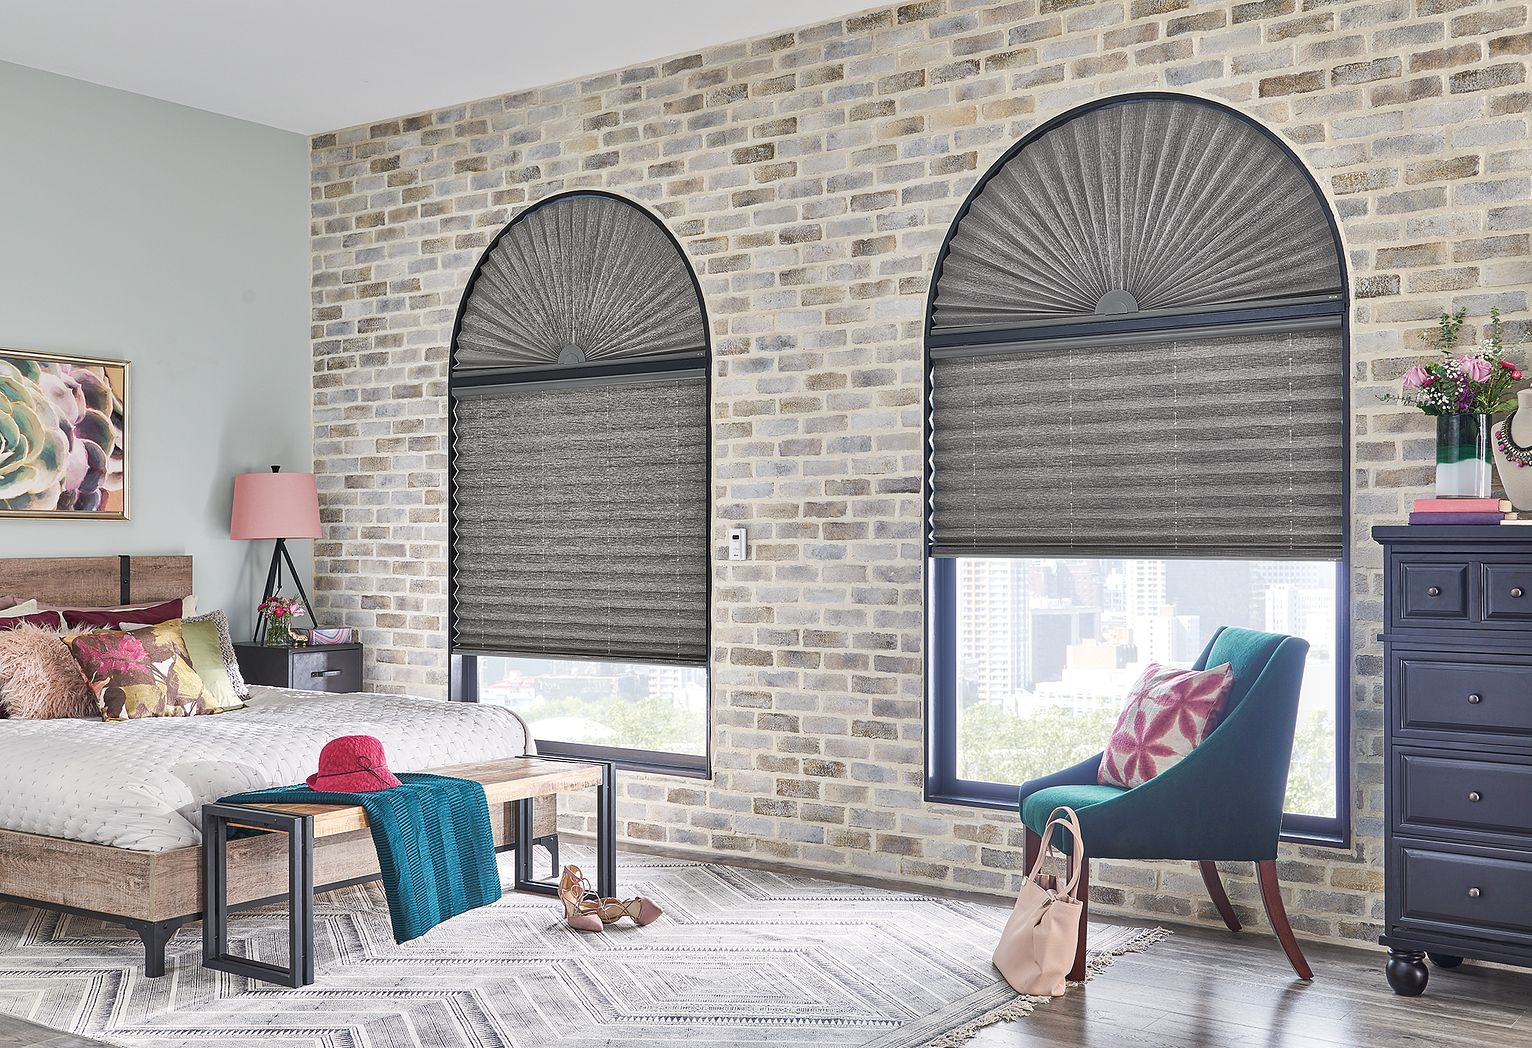 "Windows: 2"" Pleated Shades with Motorized Lift: Rainforest, Horseshoe 2852 with Privacy Liner 8005 Arches: 2"" Pleated Shades in Perfect Arch: Rainforest, Horseshoe 2852 with Privacy Liner 8005"